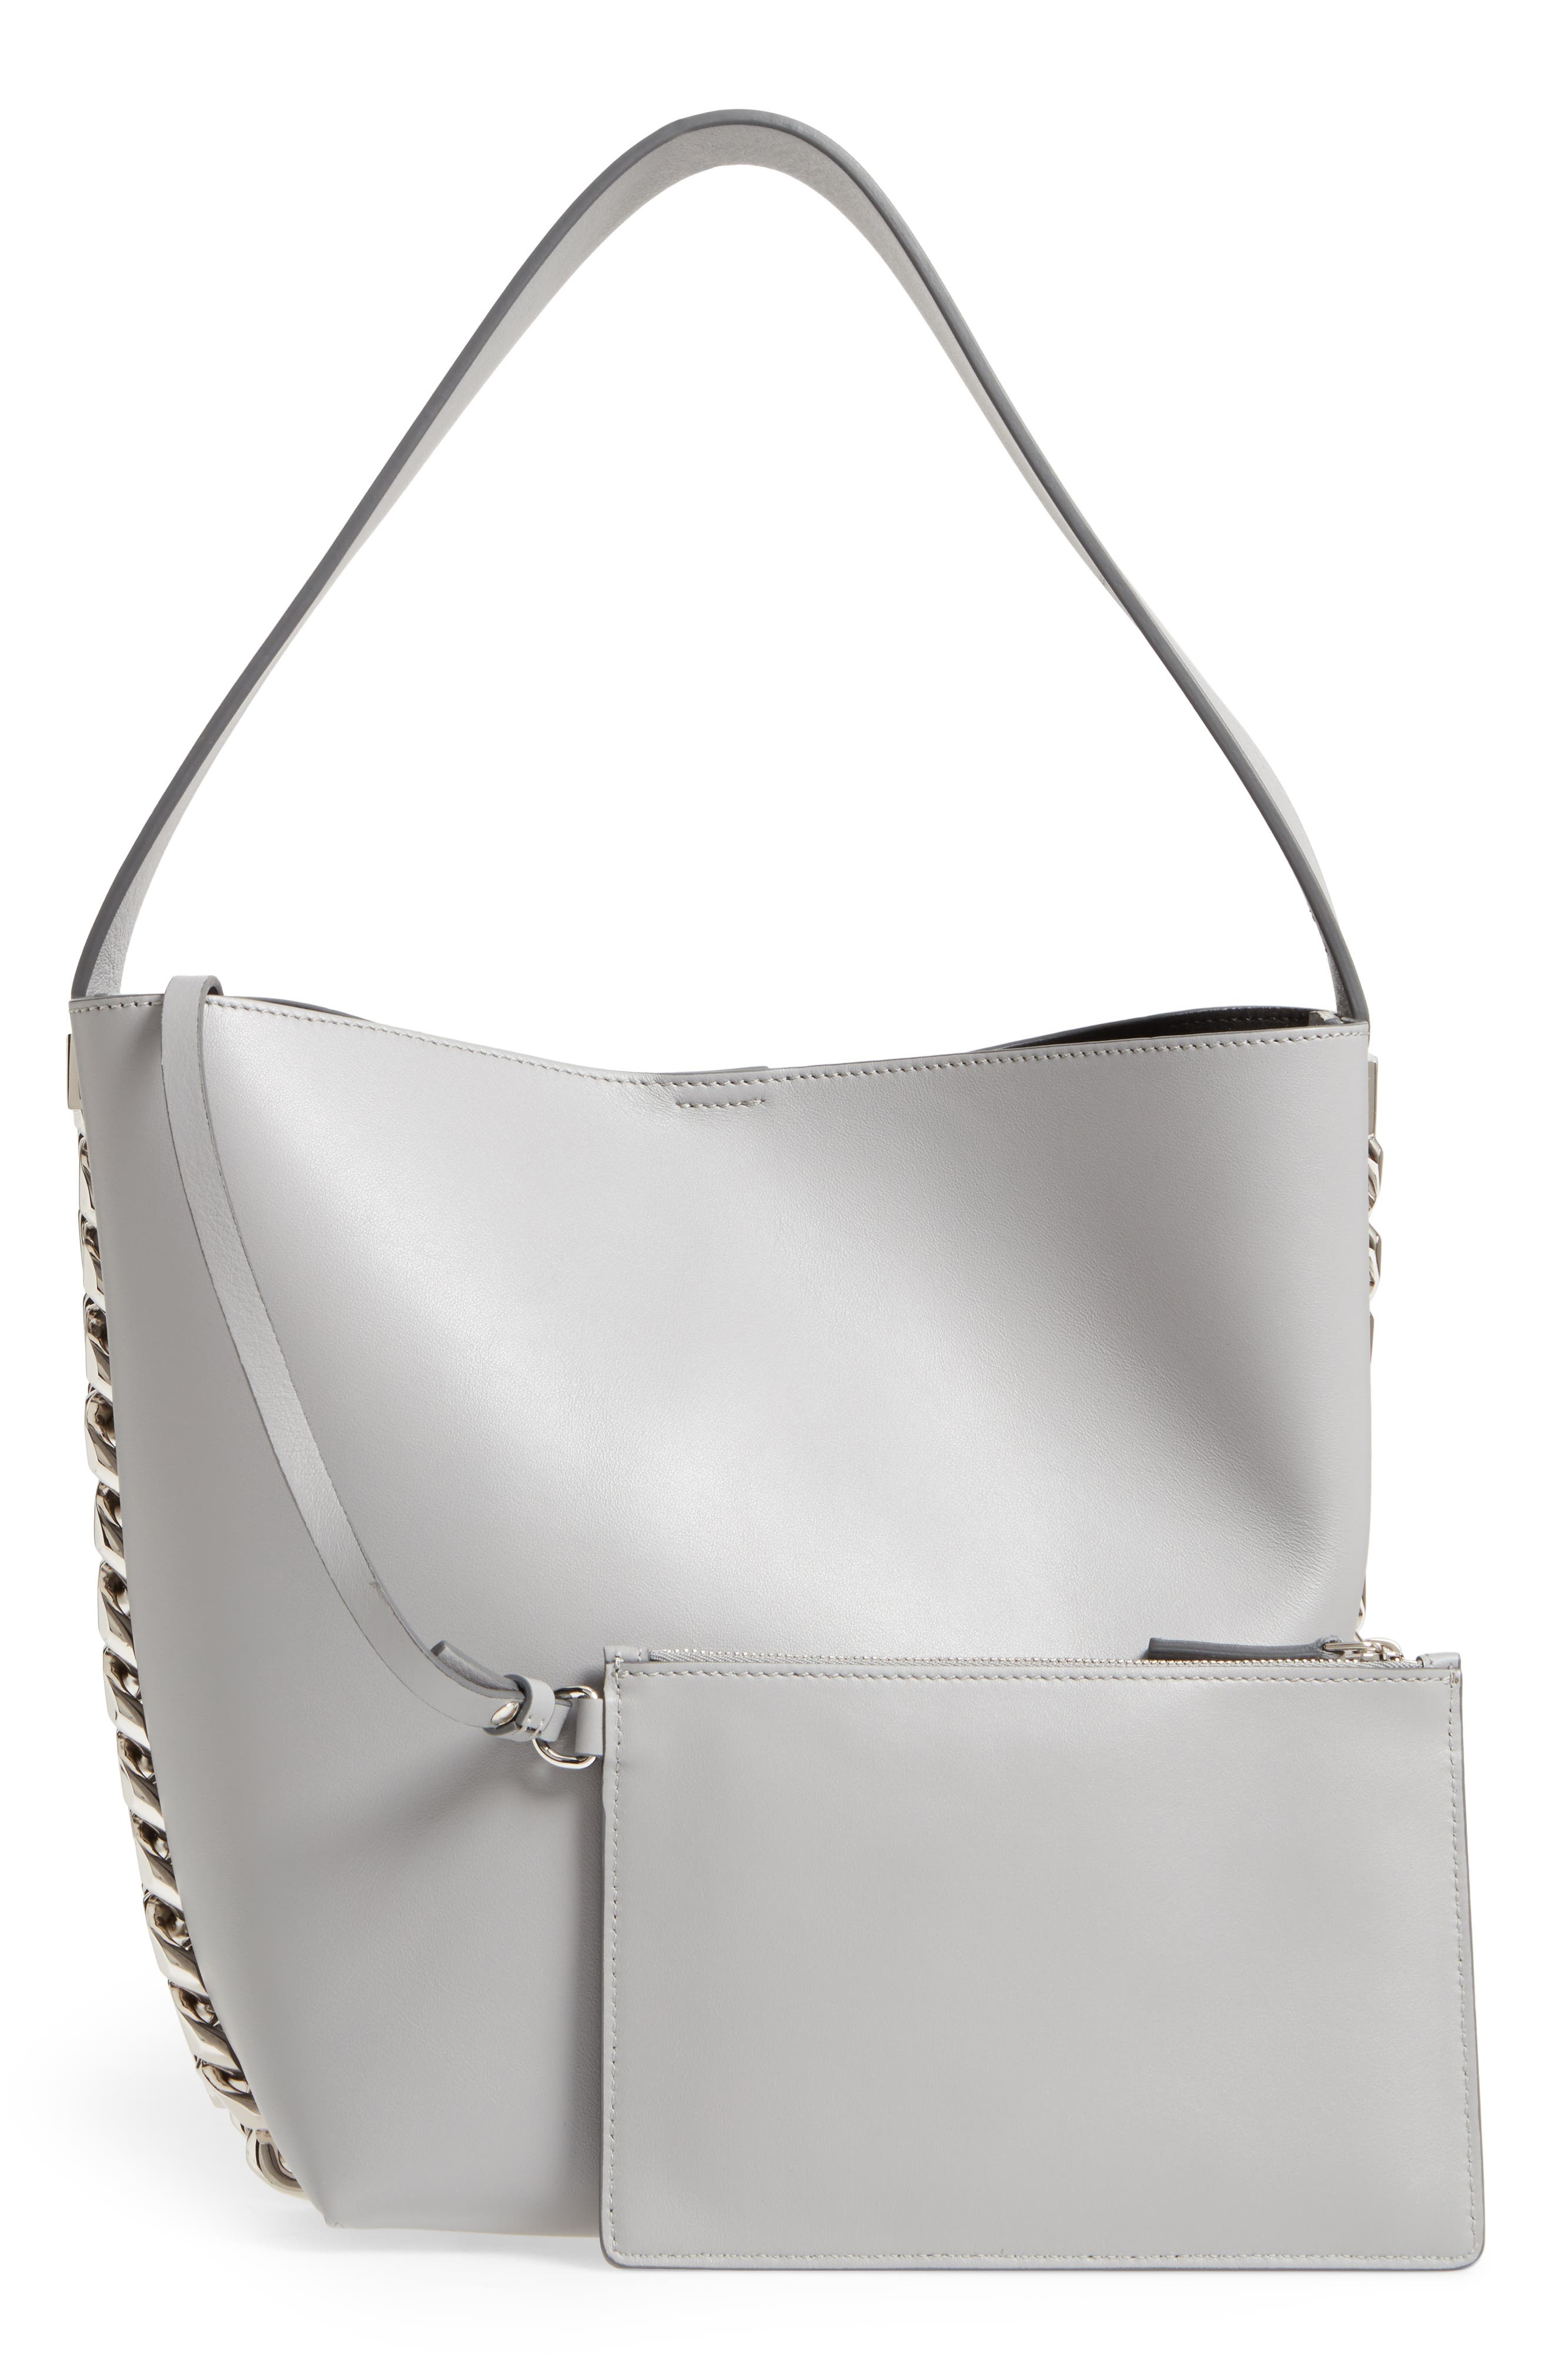 Alternate Image 2  - Givenchy Infinity Calfskin Leather Bucket Bag